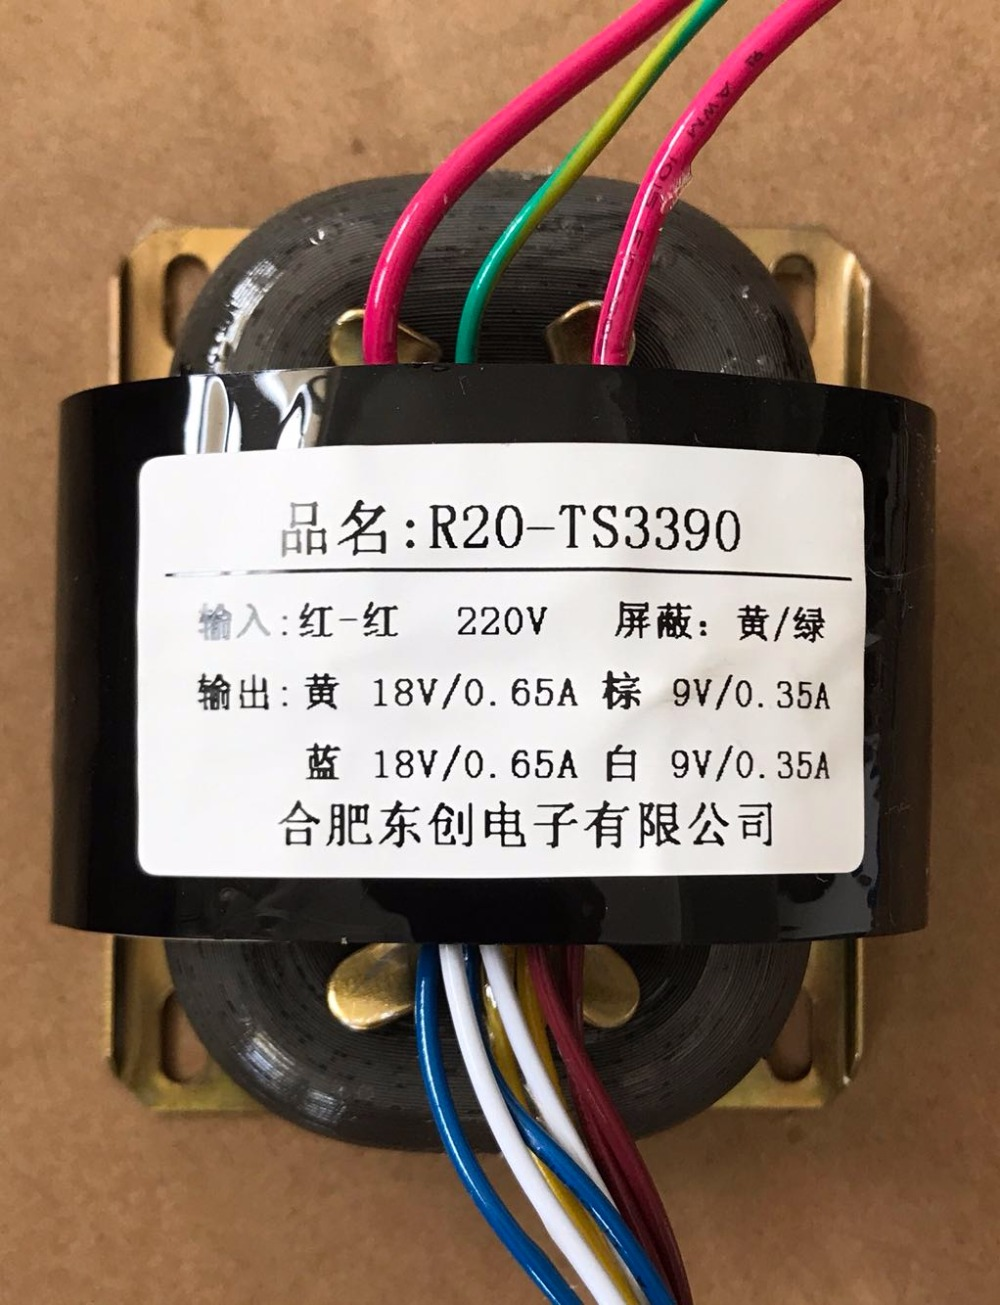 2*9V 0.35A+2*18V 0.65A  Transformer R Core R20 custom transformer 220V 30VA copper shield DAC pre-amplifier HIFI decoder2*9V 0.35A+2*18V 0.65A  Transformer R Core R20 custom transformer 220V 30VA copper shield DAC pre-amplifier HIFI decoder